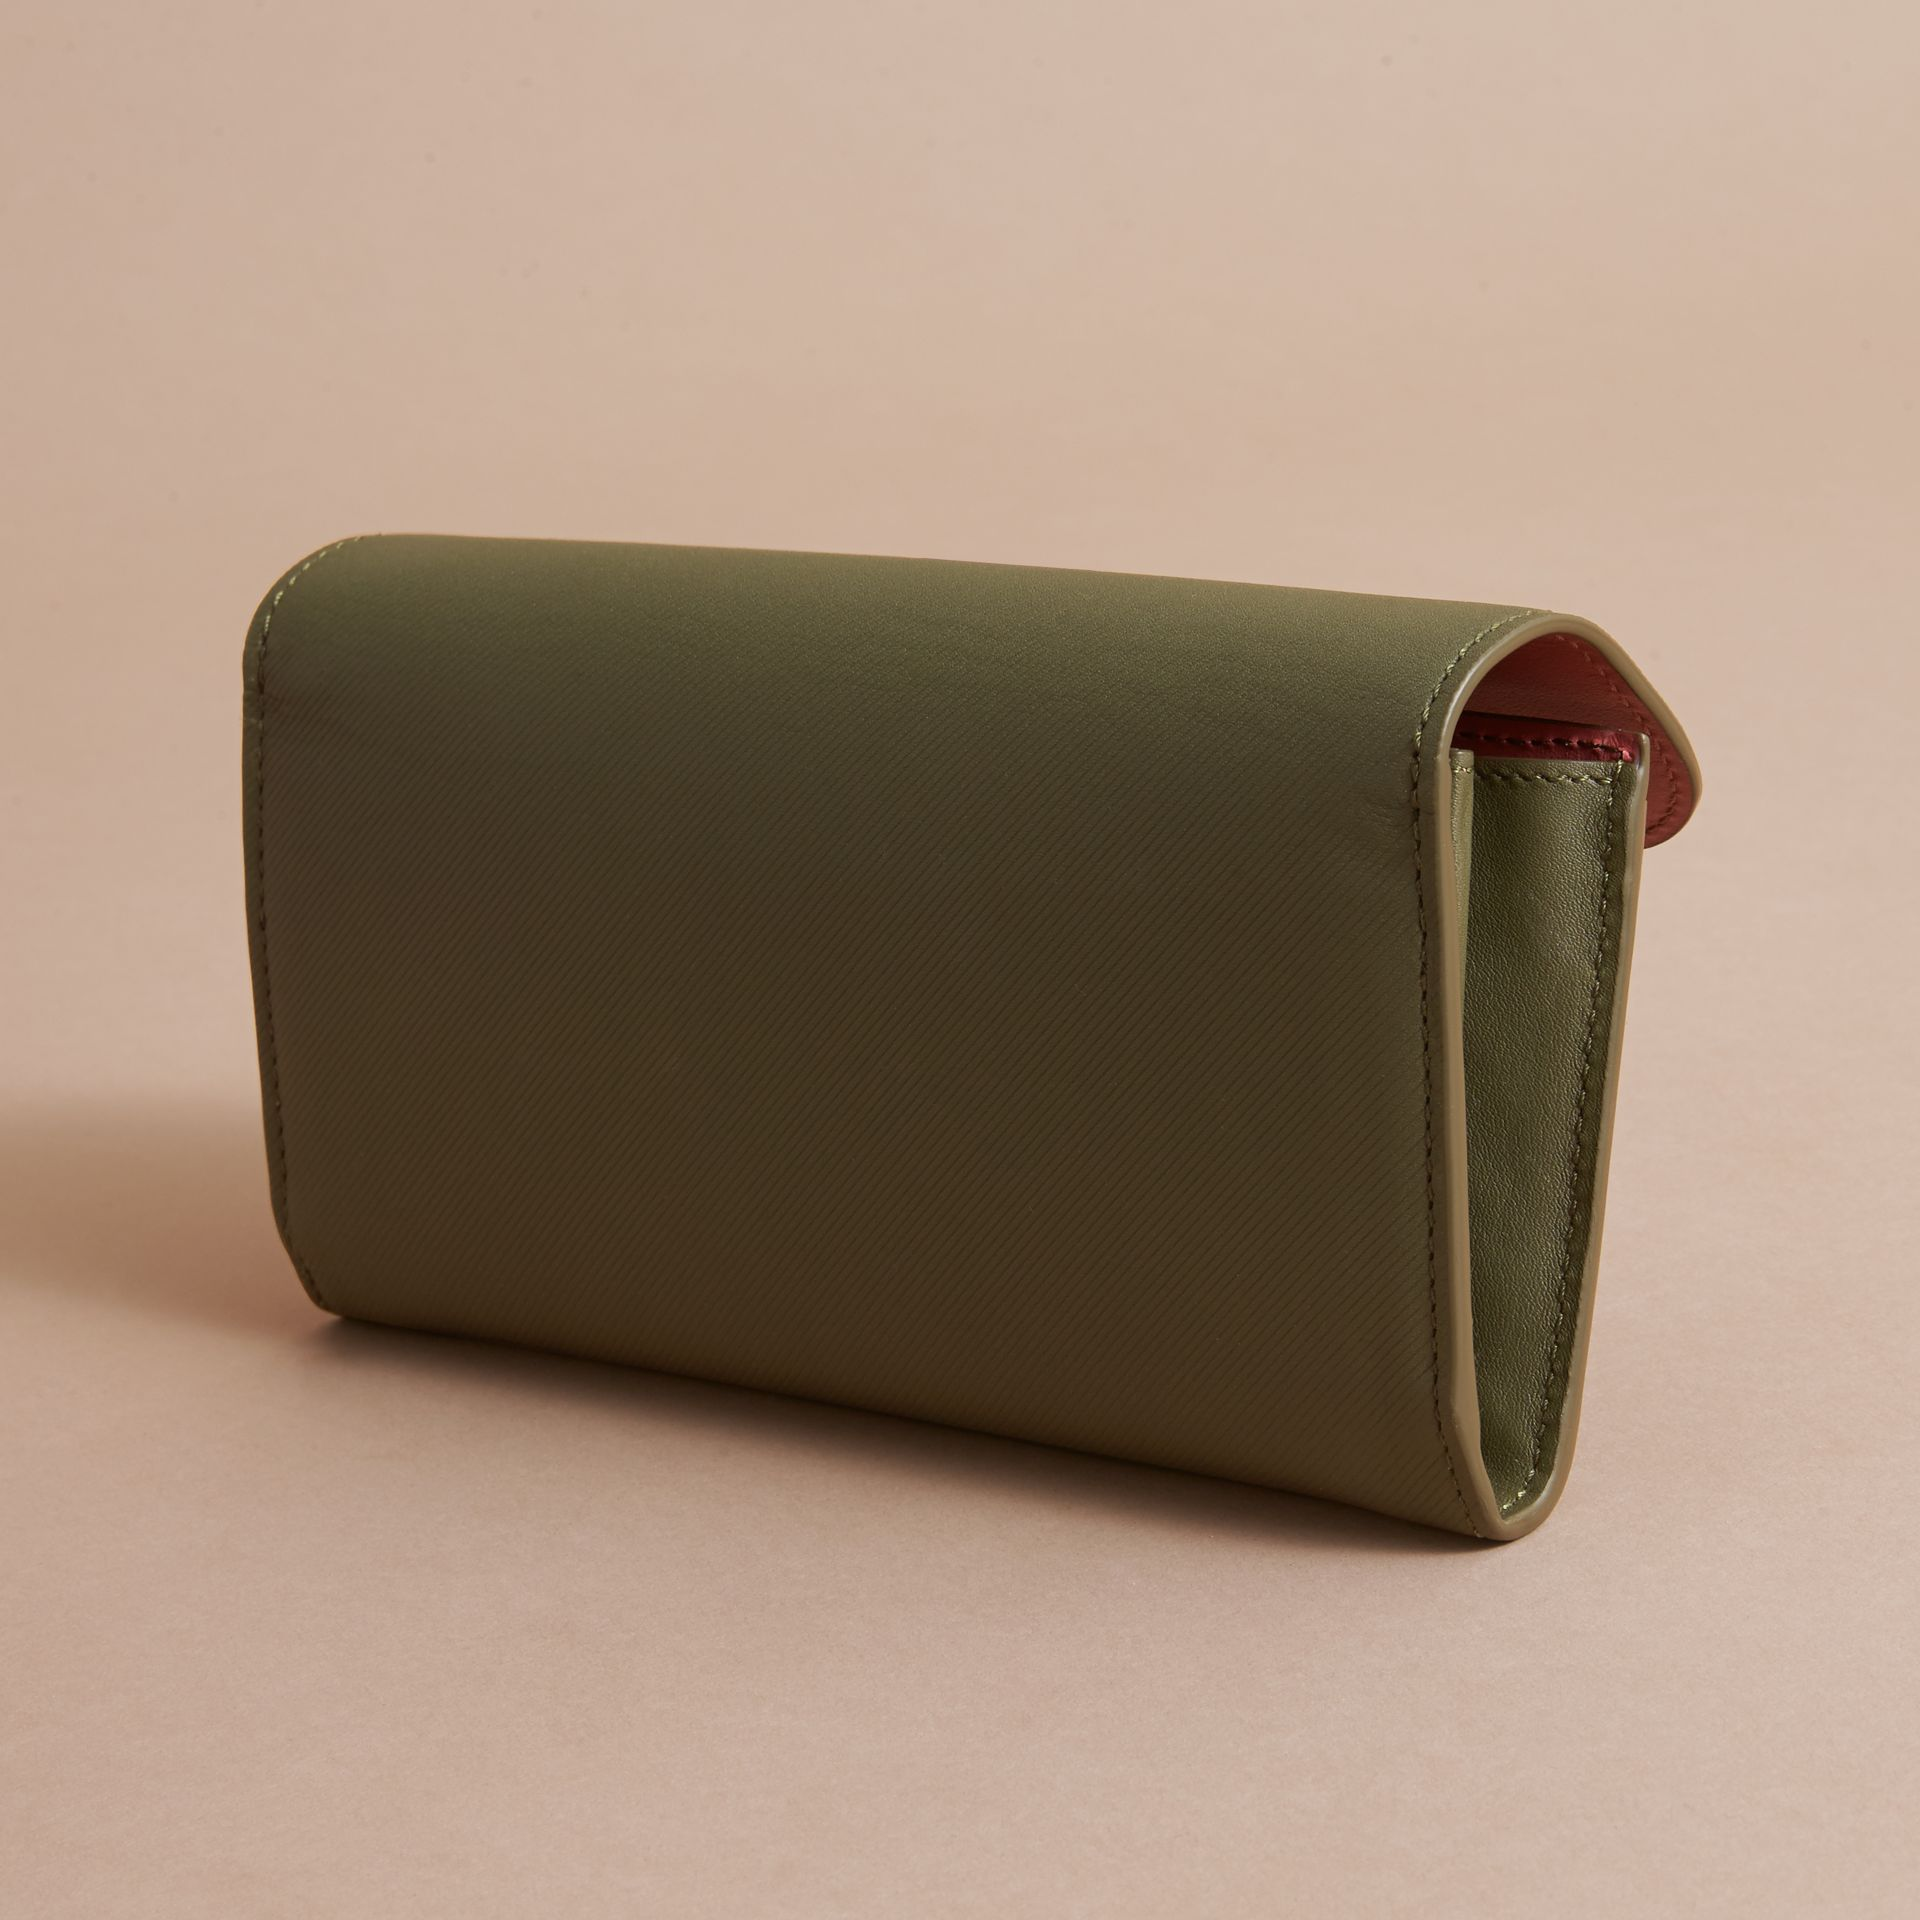 Two-tone Trench Leather Continental Wallet in Moss Green/ Blossom Pink - Women | Burberry Australia - gallery image 4